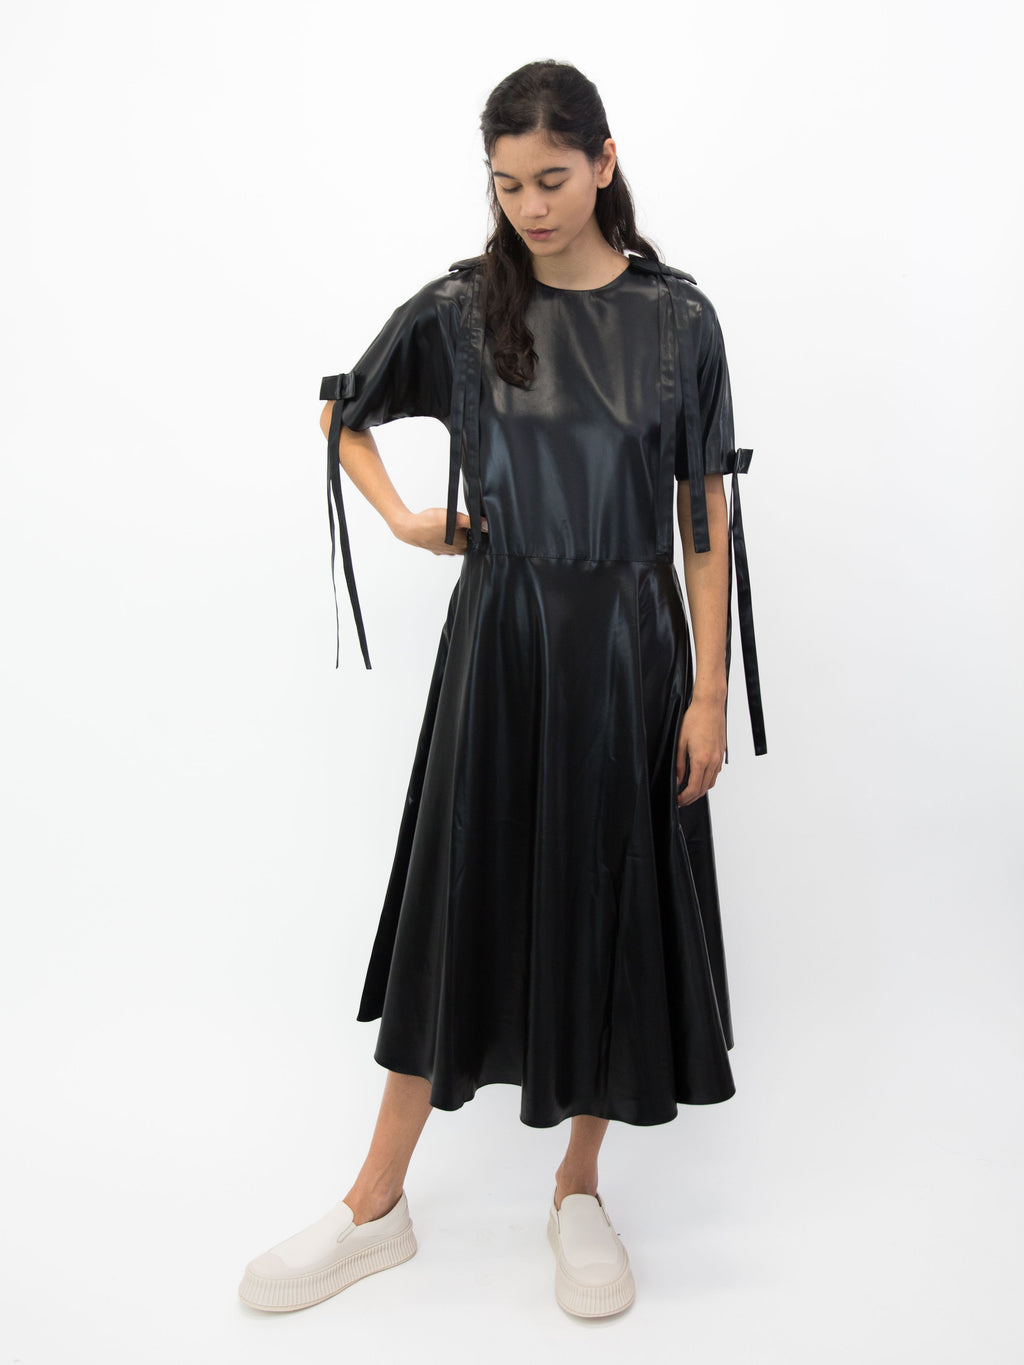 SARA LANZI Flared Bow Dress - Black